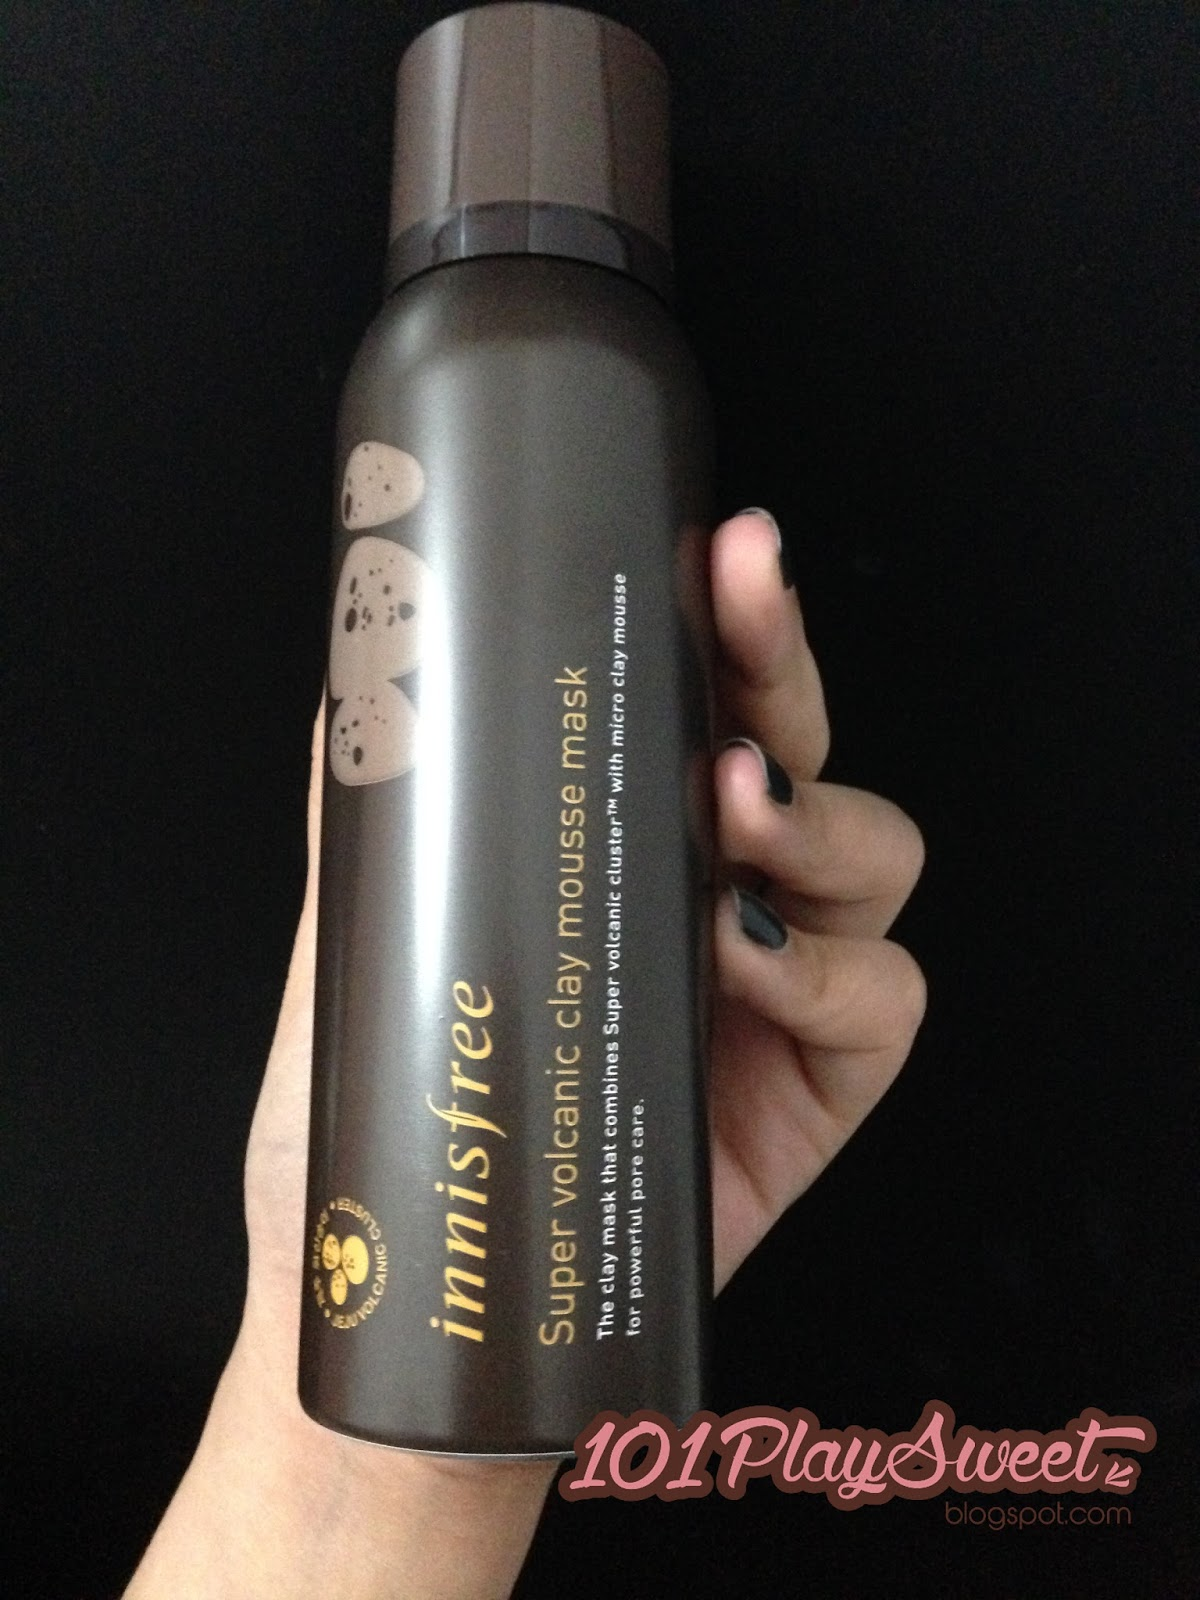 how to use innisfree volcanic clay mousse mask